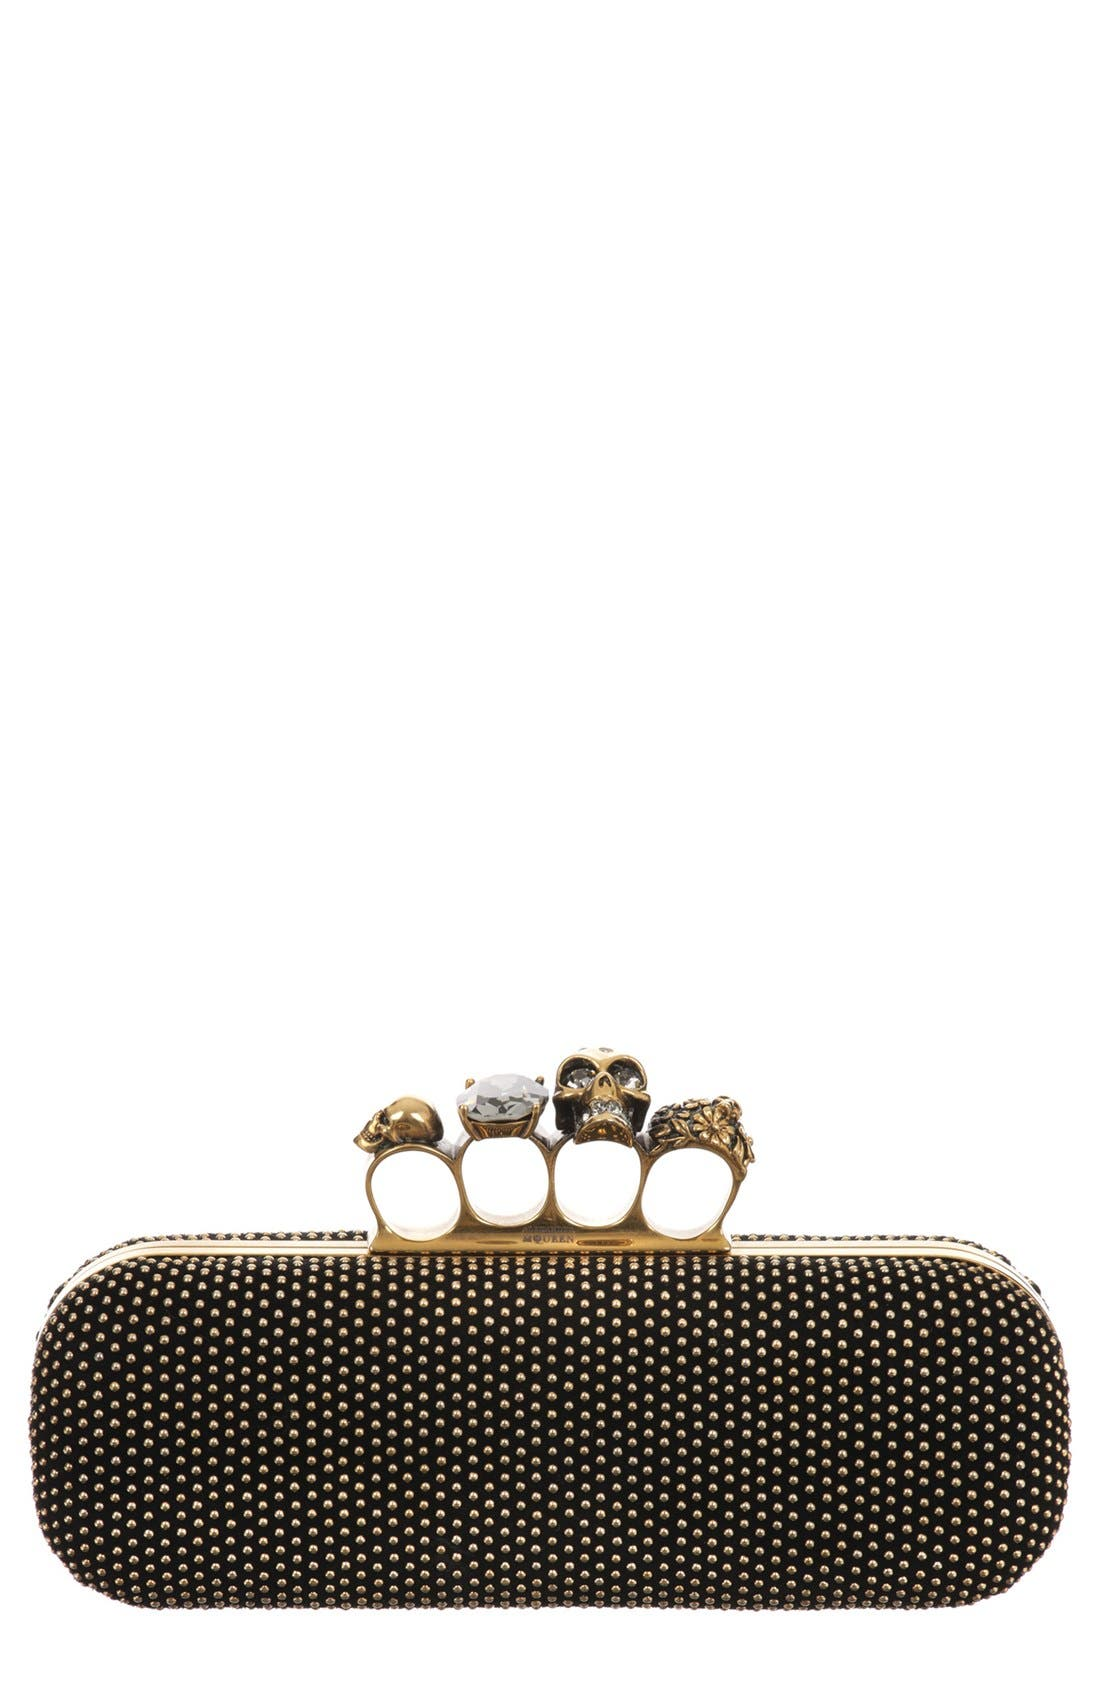 Alternate Image 1 Selected - Alexander McQueen Knuckle Clasp Studded Box Clutch